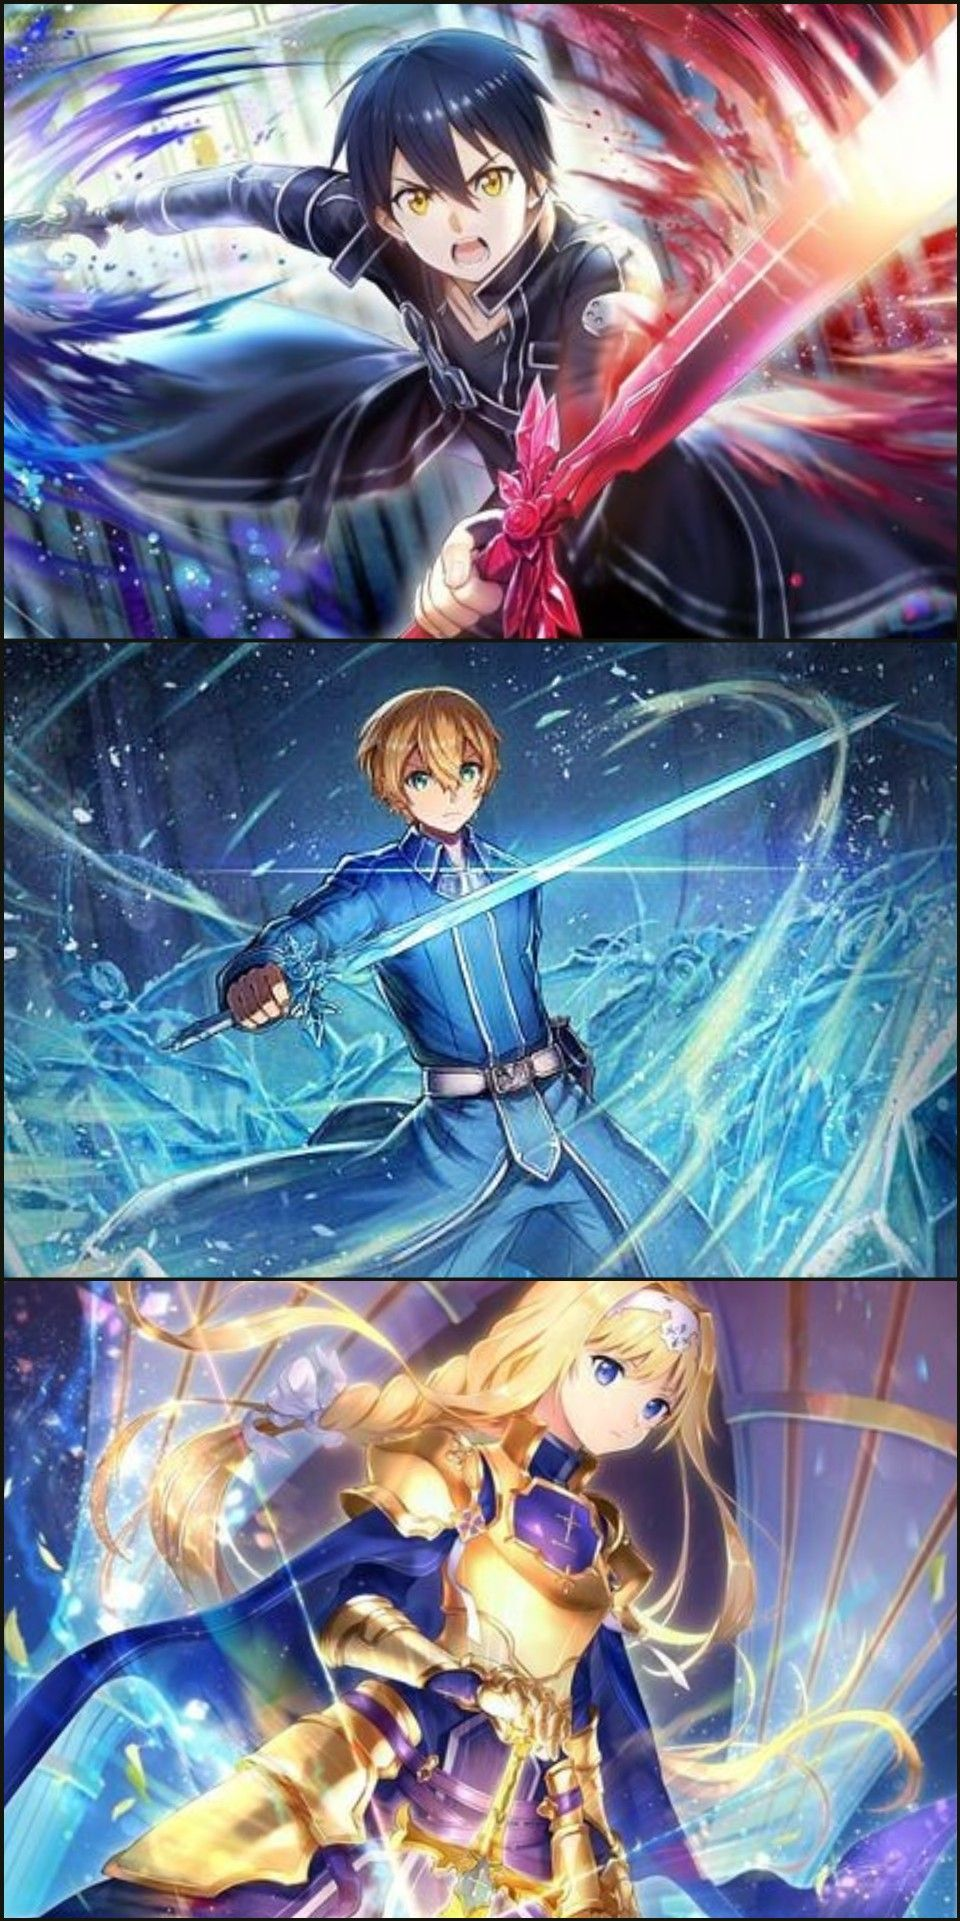 Pin on Sword art online